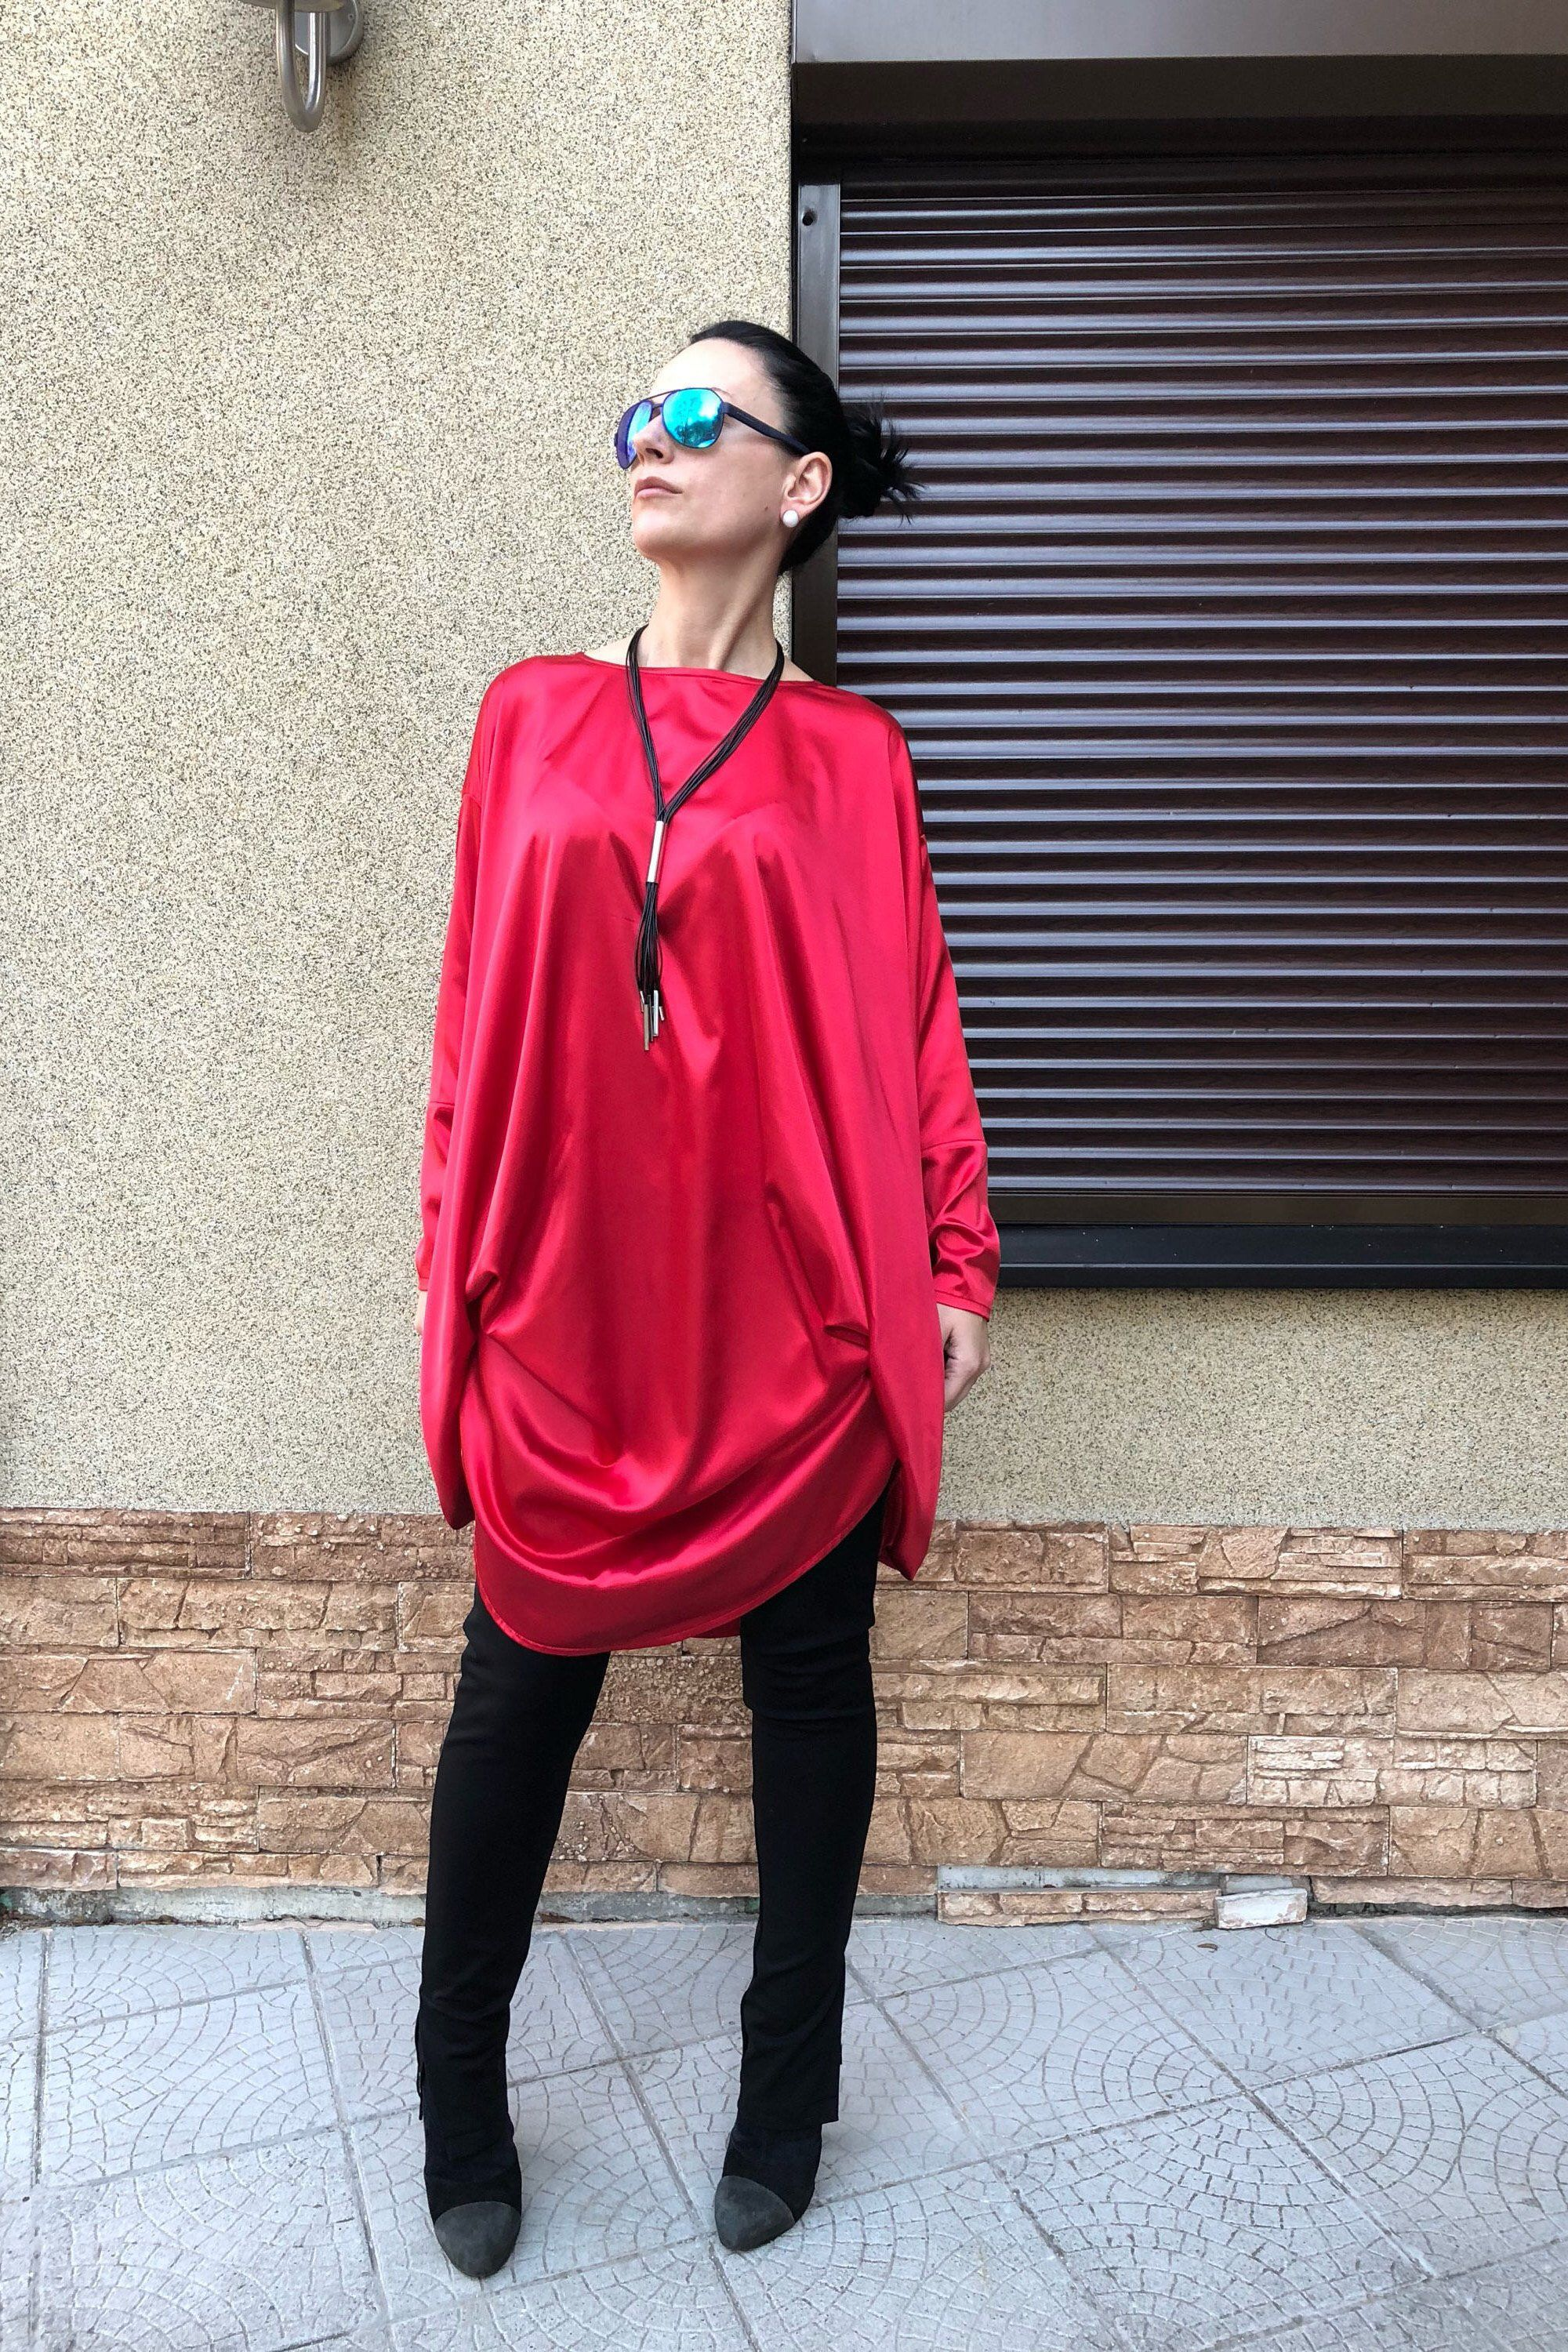 254a9fd5b4d Excited to share the latest addition to my #etsy shop: Luxury Red Satin  Tunic Top/ Plus Size Maxi Top/ Womens Clothing/ Black Tunic/ Loose  Oversized Blouse/ ...